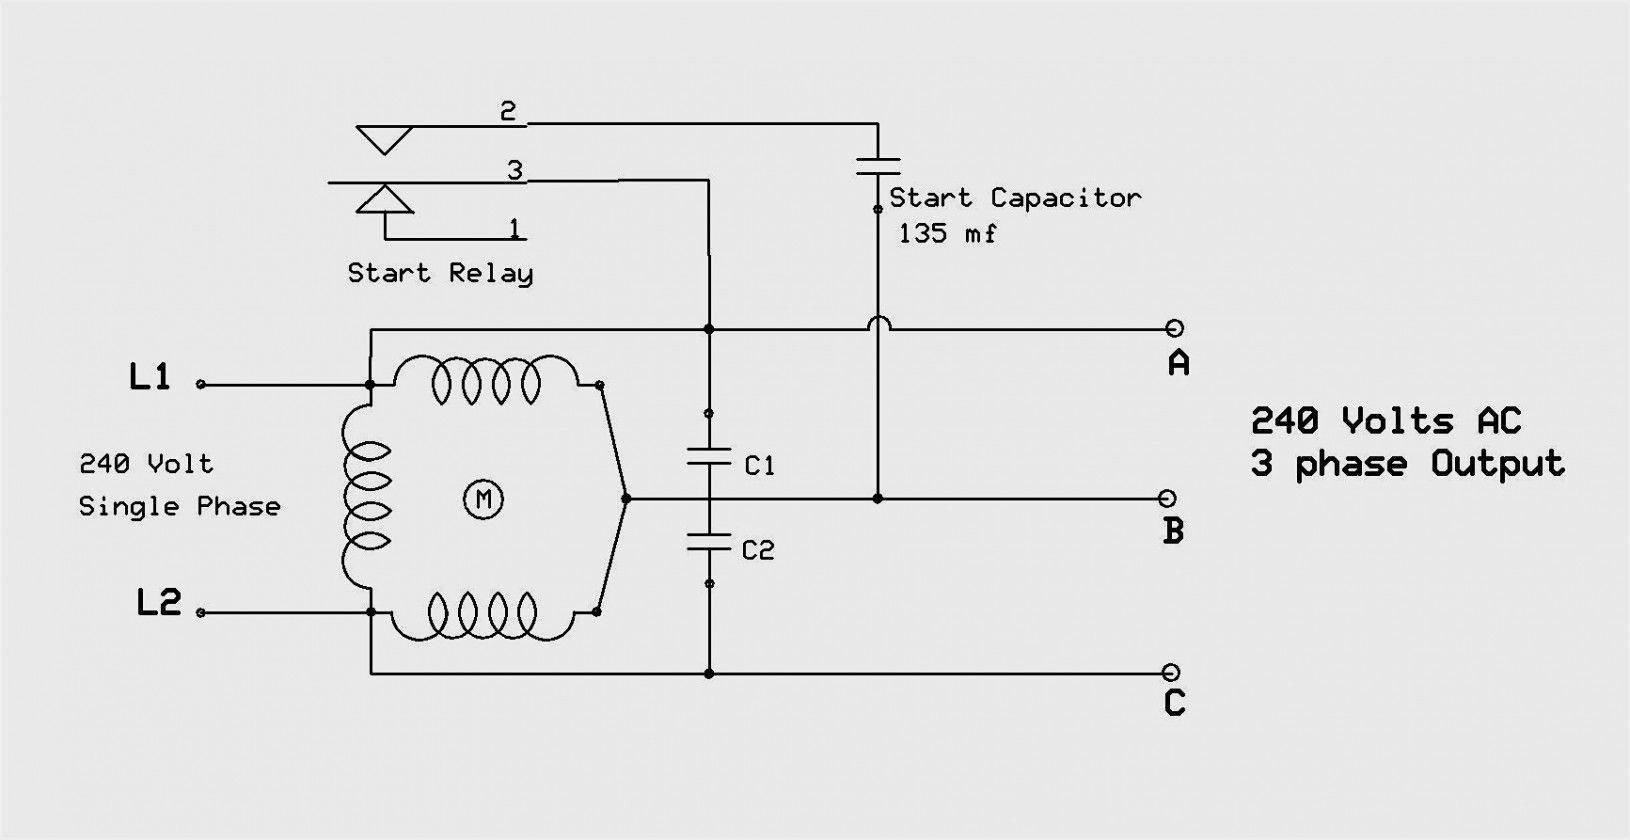 [QMVU_8575]  Wiring Diagram For 220 Volt Single Phase Motor - bookingritzcarlton.info | Electrical  diagram, Diagram, Electrical wiring colours | 208v Motor Wiring Diagrams |  | Pinterest